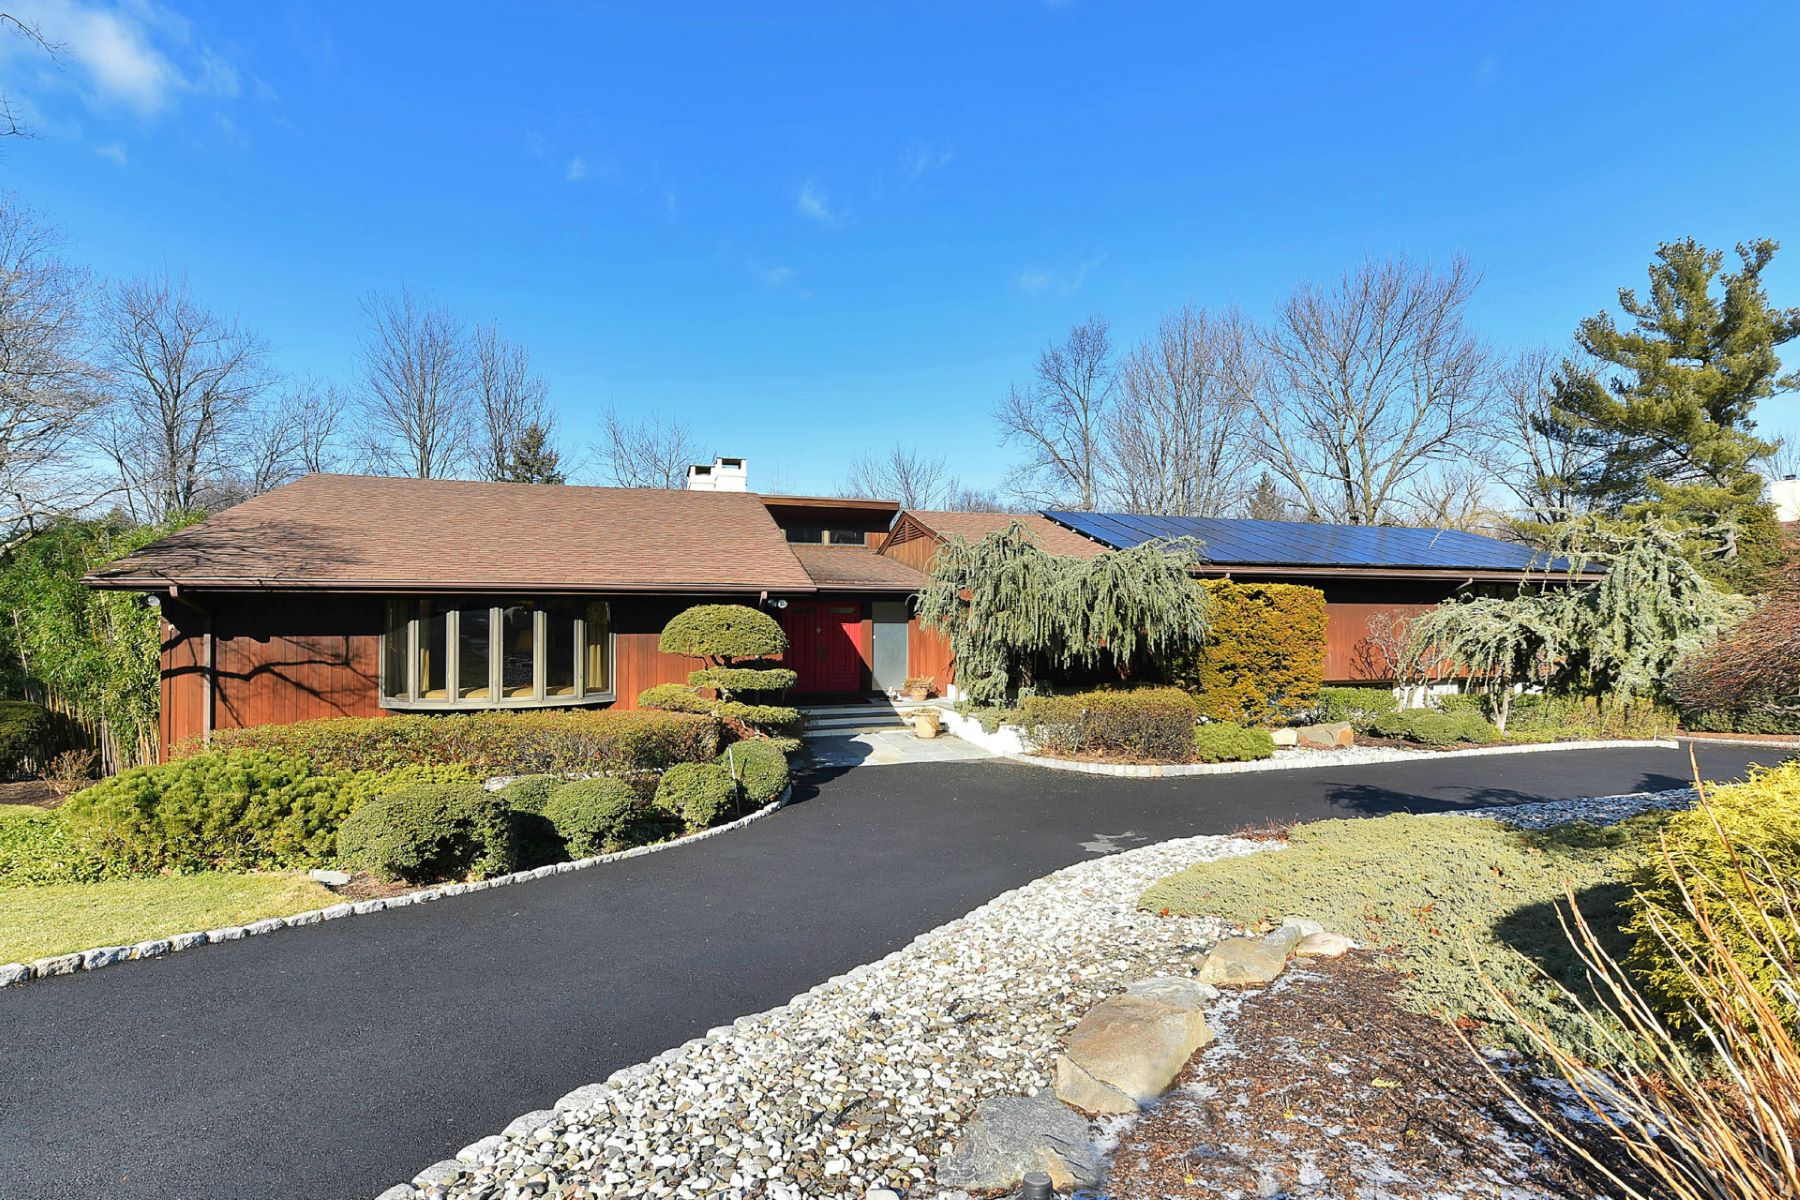 Single Family Home for Sale at Sprawling Contemporary 28 Sunderland Rd. Tenafly, New Jersey 07670 United States